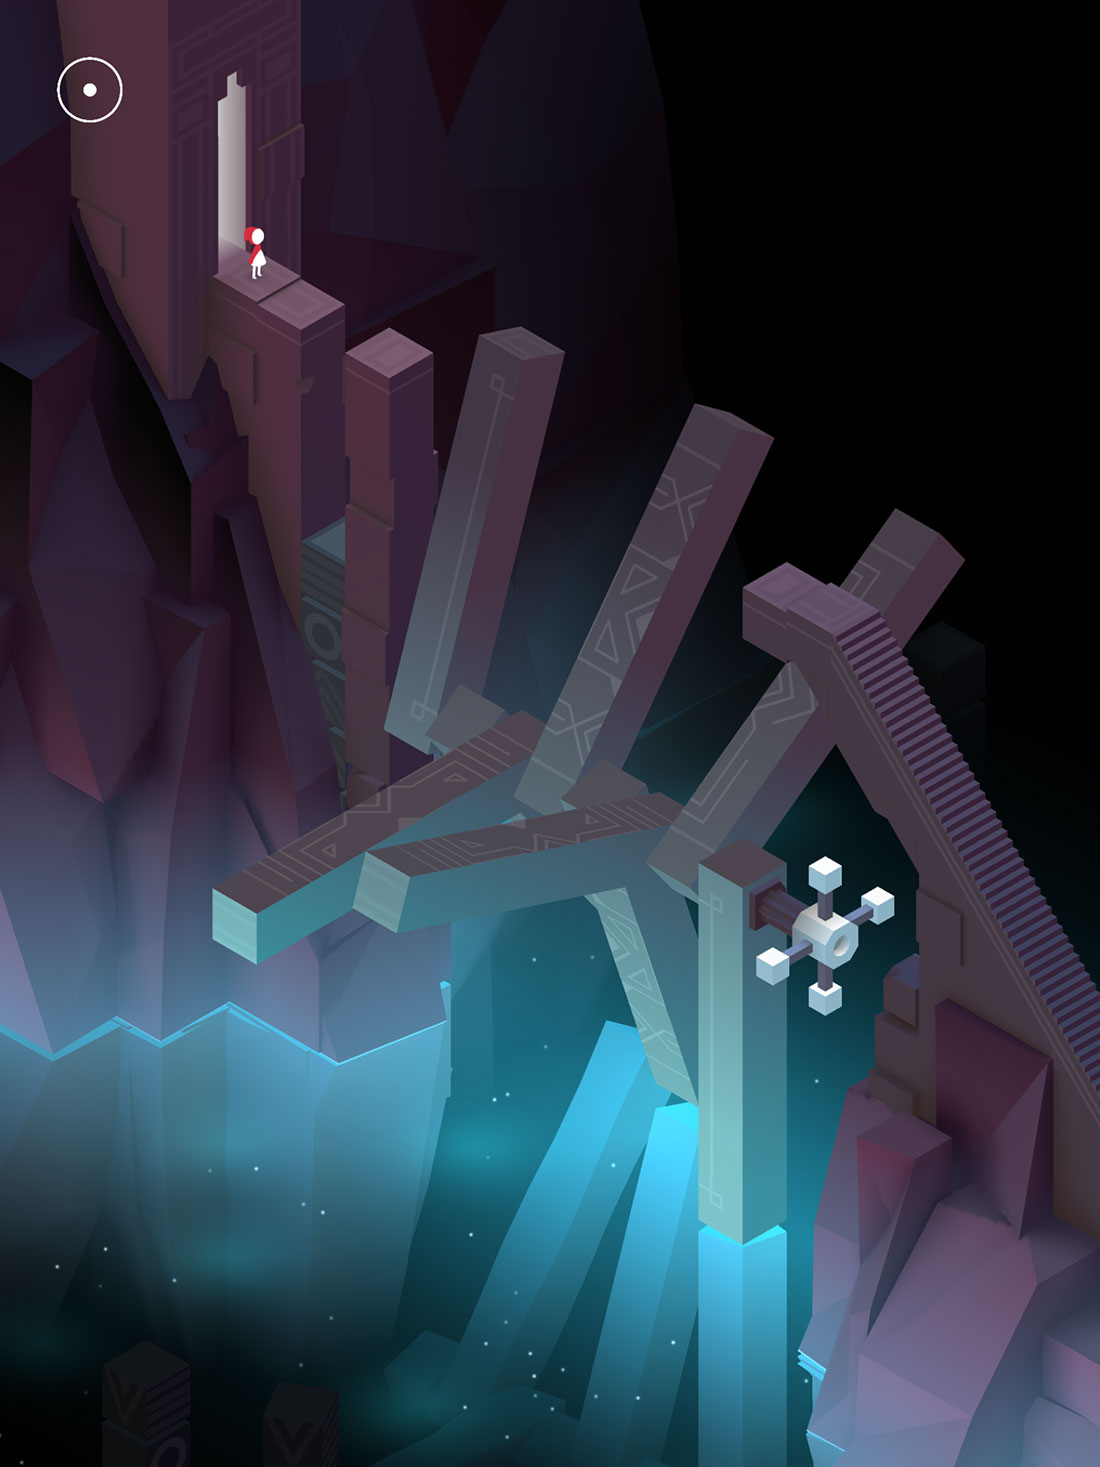 Monument Valley 2 screenshot showing a princess facing a weirdly rotating bridge above a blue abyss.